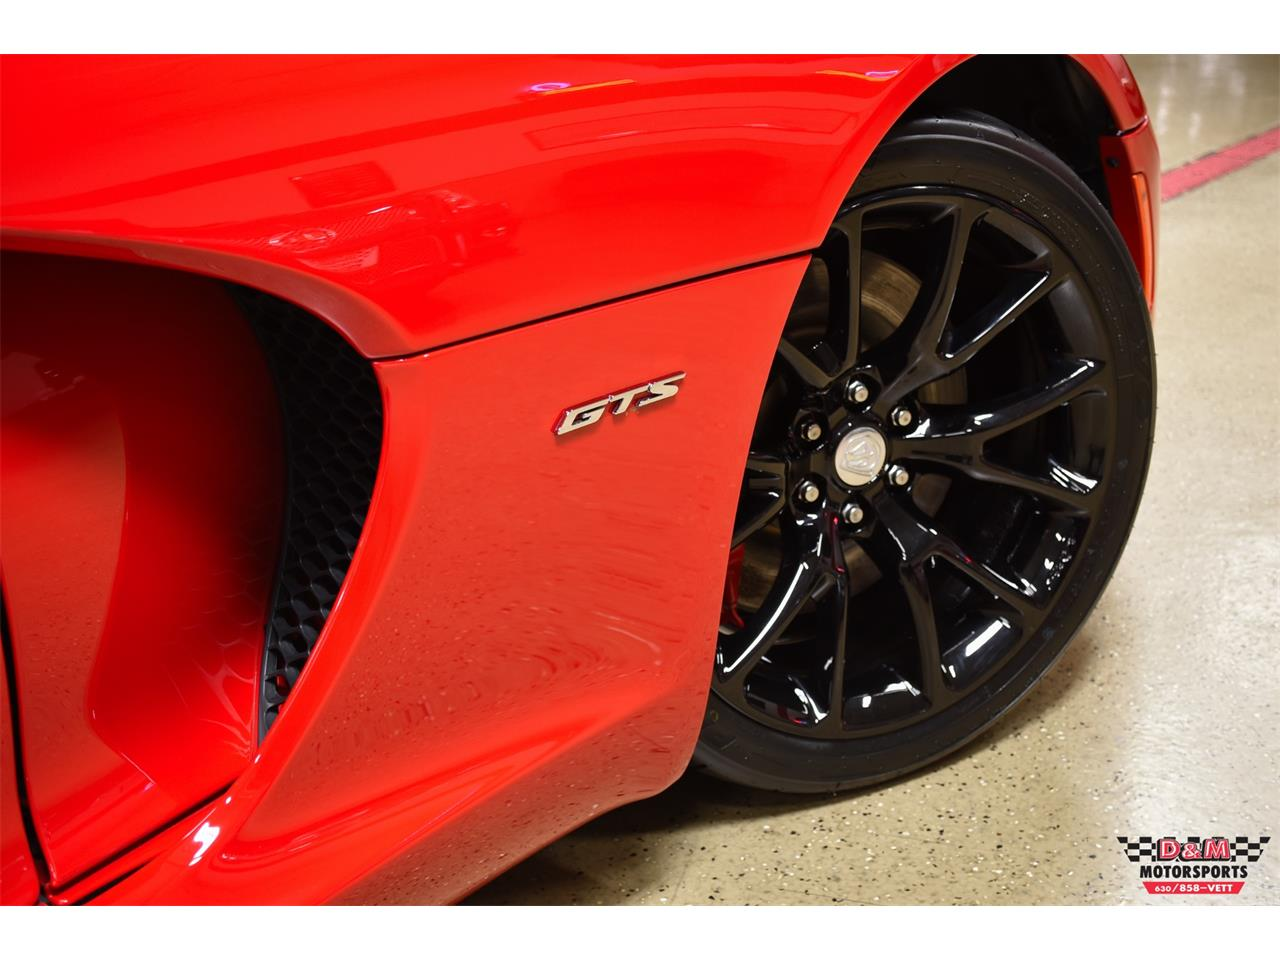 Large Picture of 2013 Dodge Viper located in Glen Ellyn Illinois - $74,995.00 Offered by D & M Motorsports - PTPC